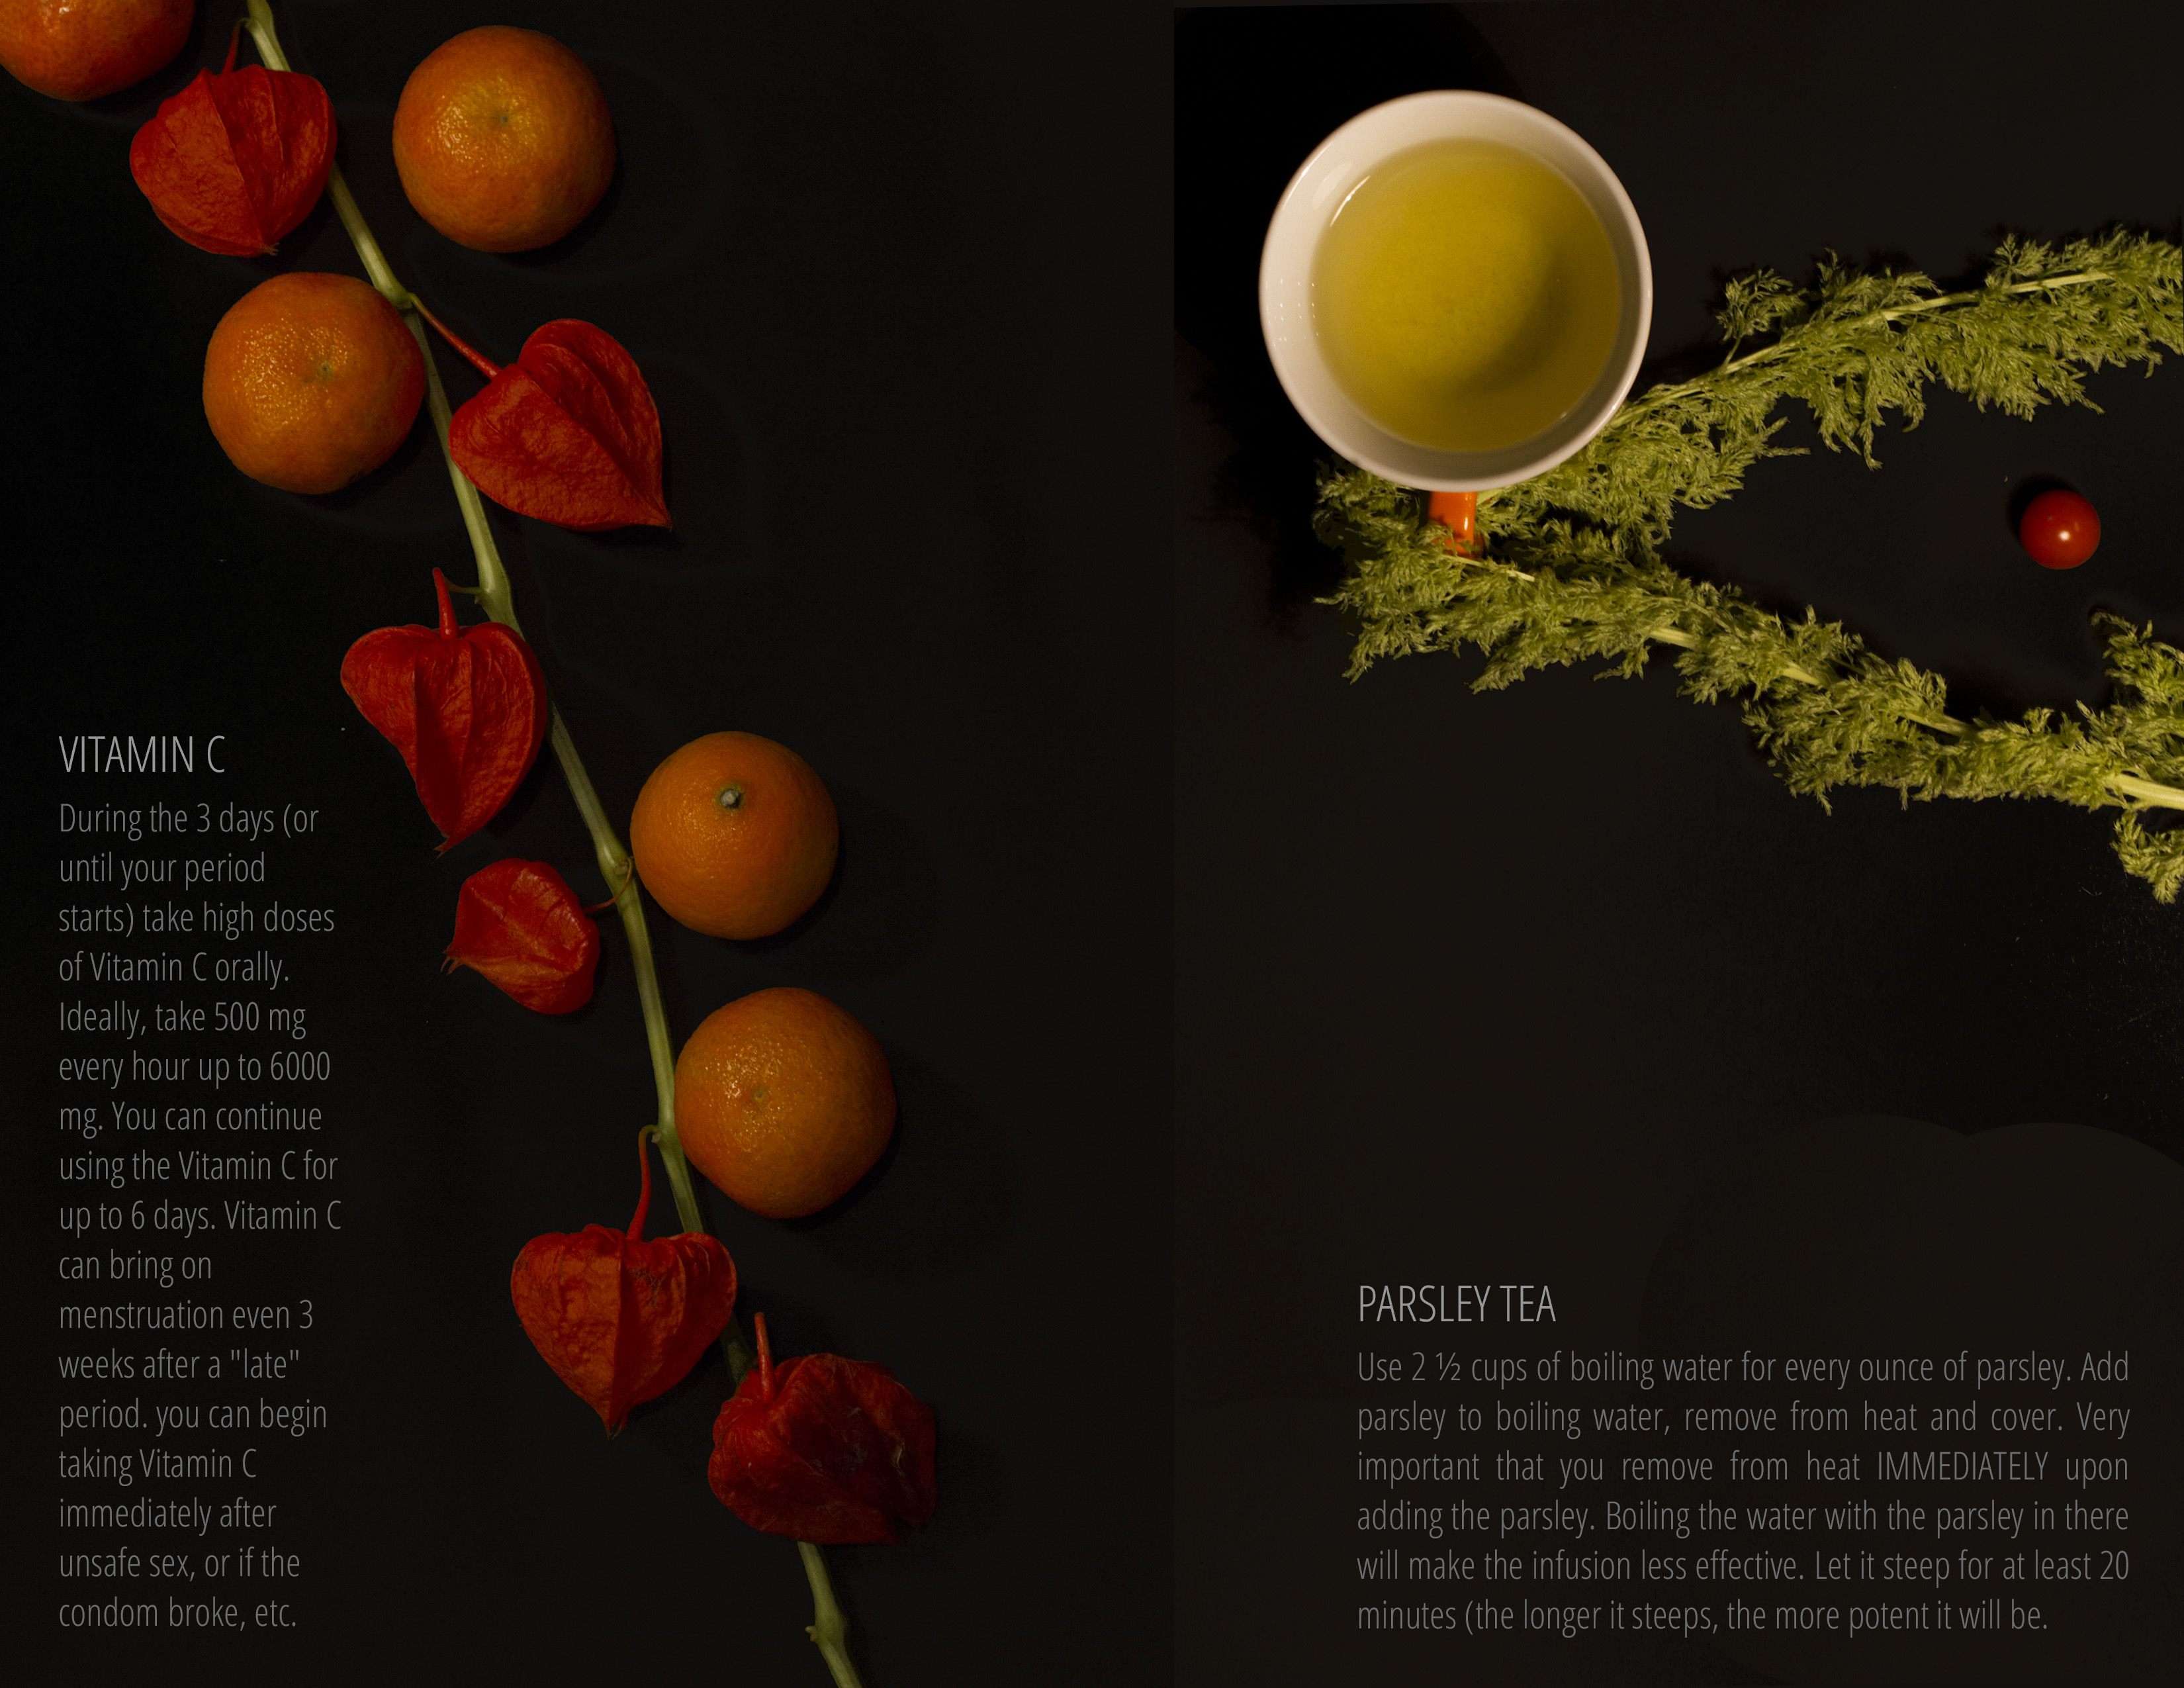 On the left is the text: Vitamin C. Next to the text is a single chinese lantern flower stem with clementines placed alongside the flowers. To the right, is a cup of tea with a green sprig running through the cup handle. There is text below the teacup, which reads: Parsley Tea.